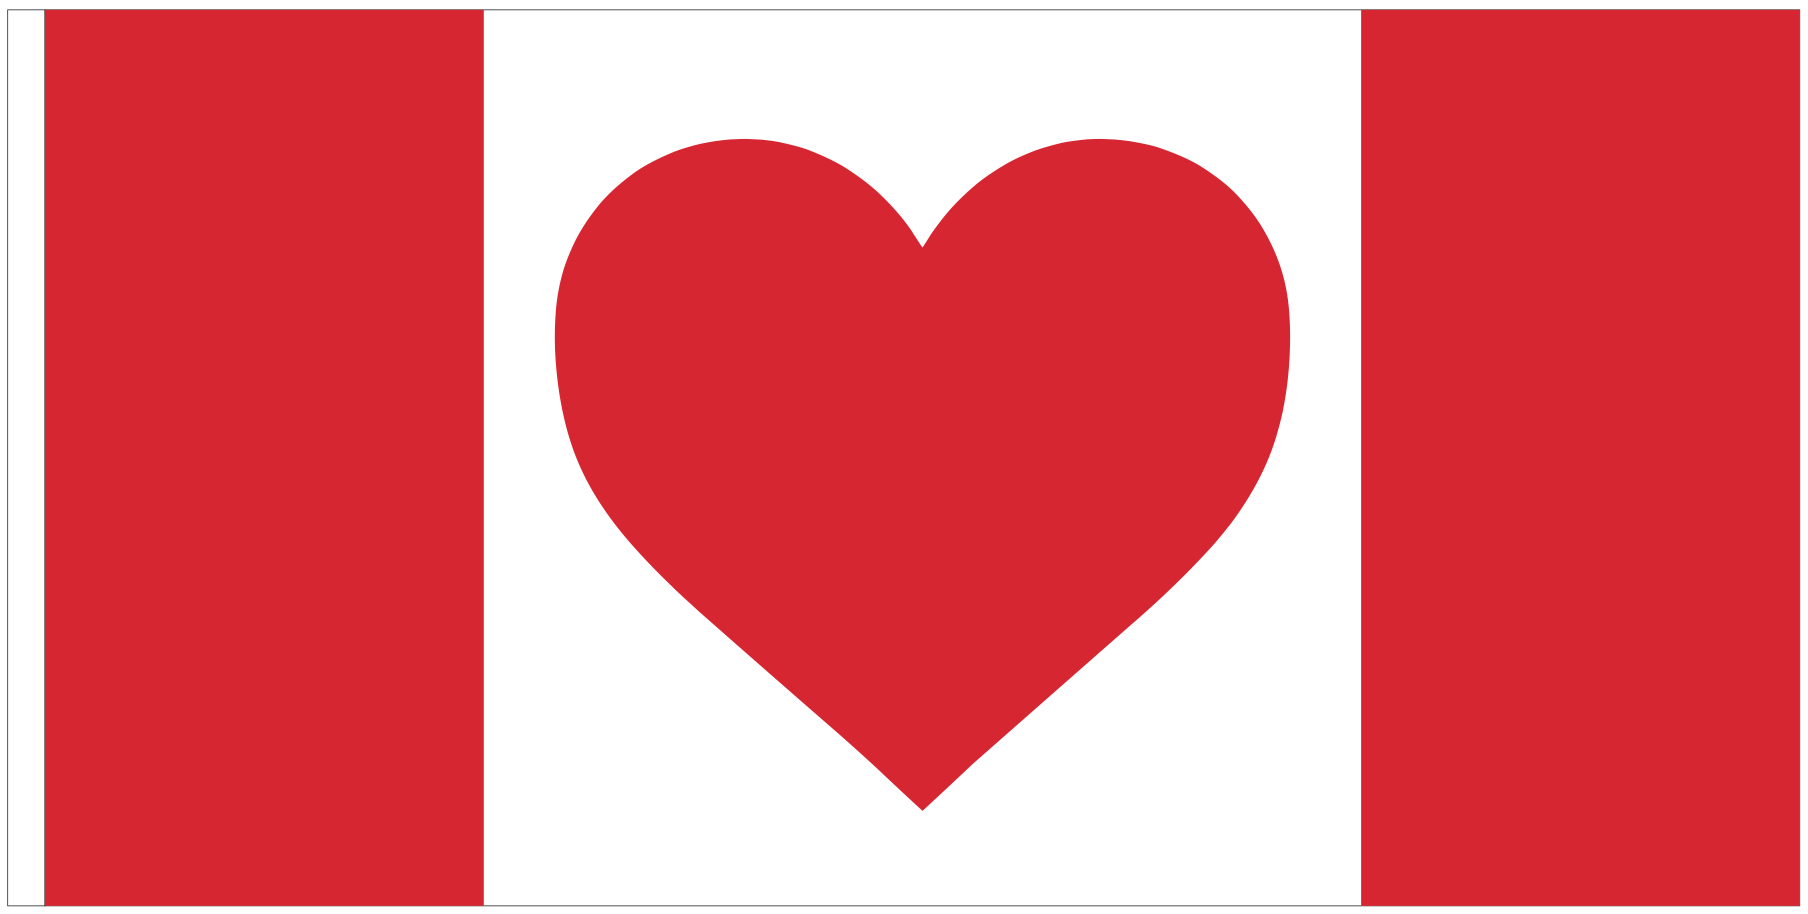 Heart Canada Flag - 18x36 Sewn Nylon with Grommets